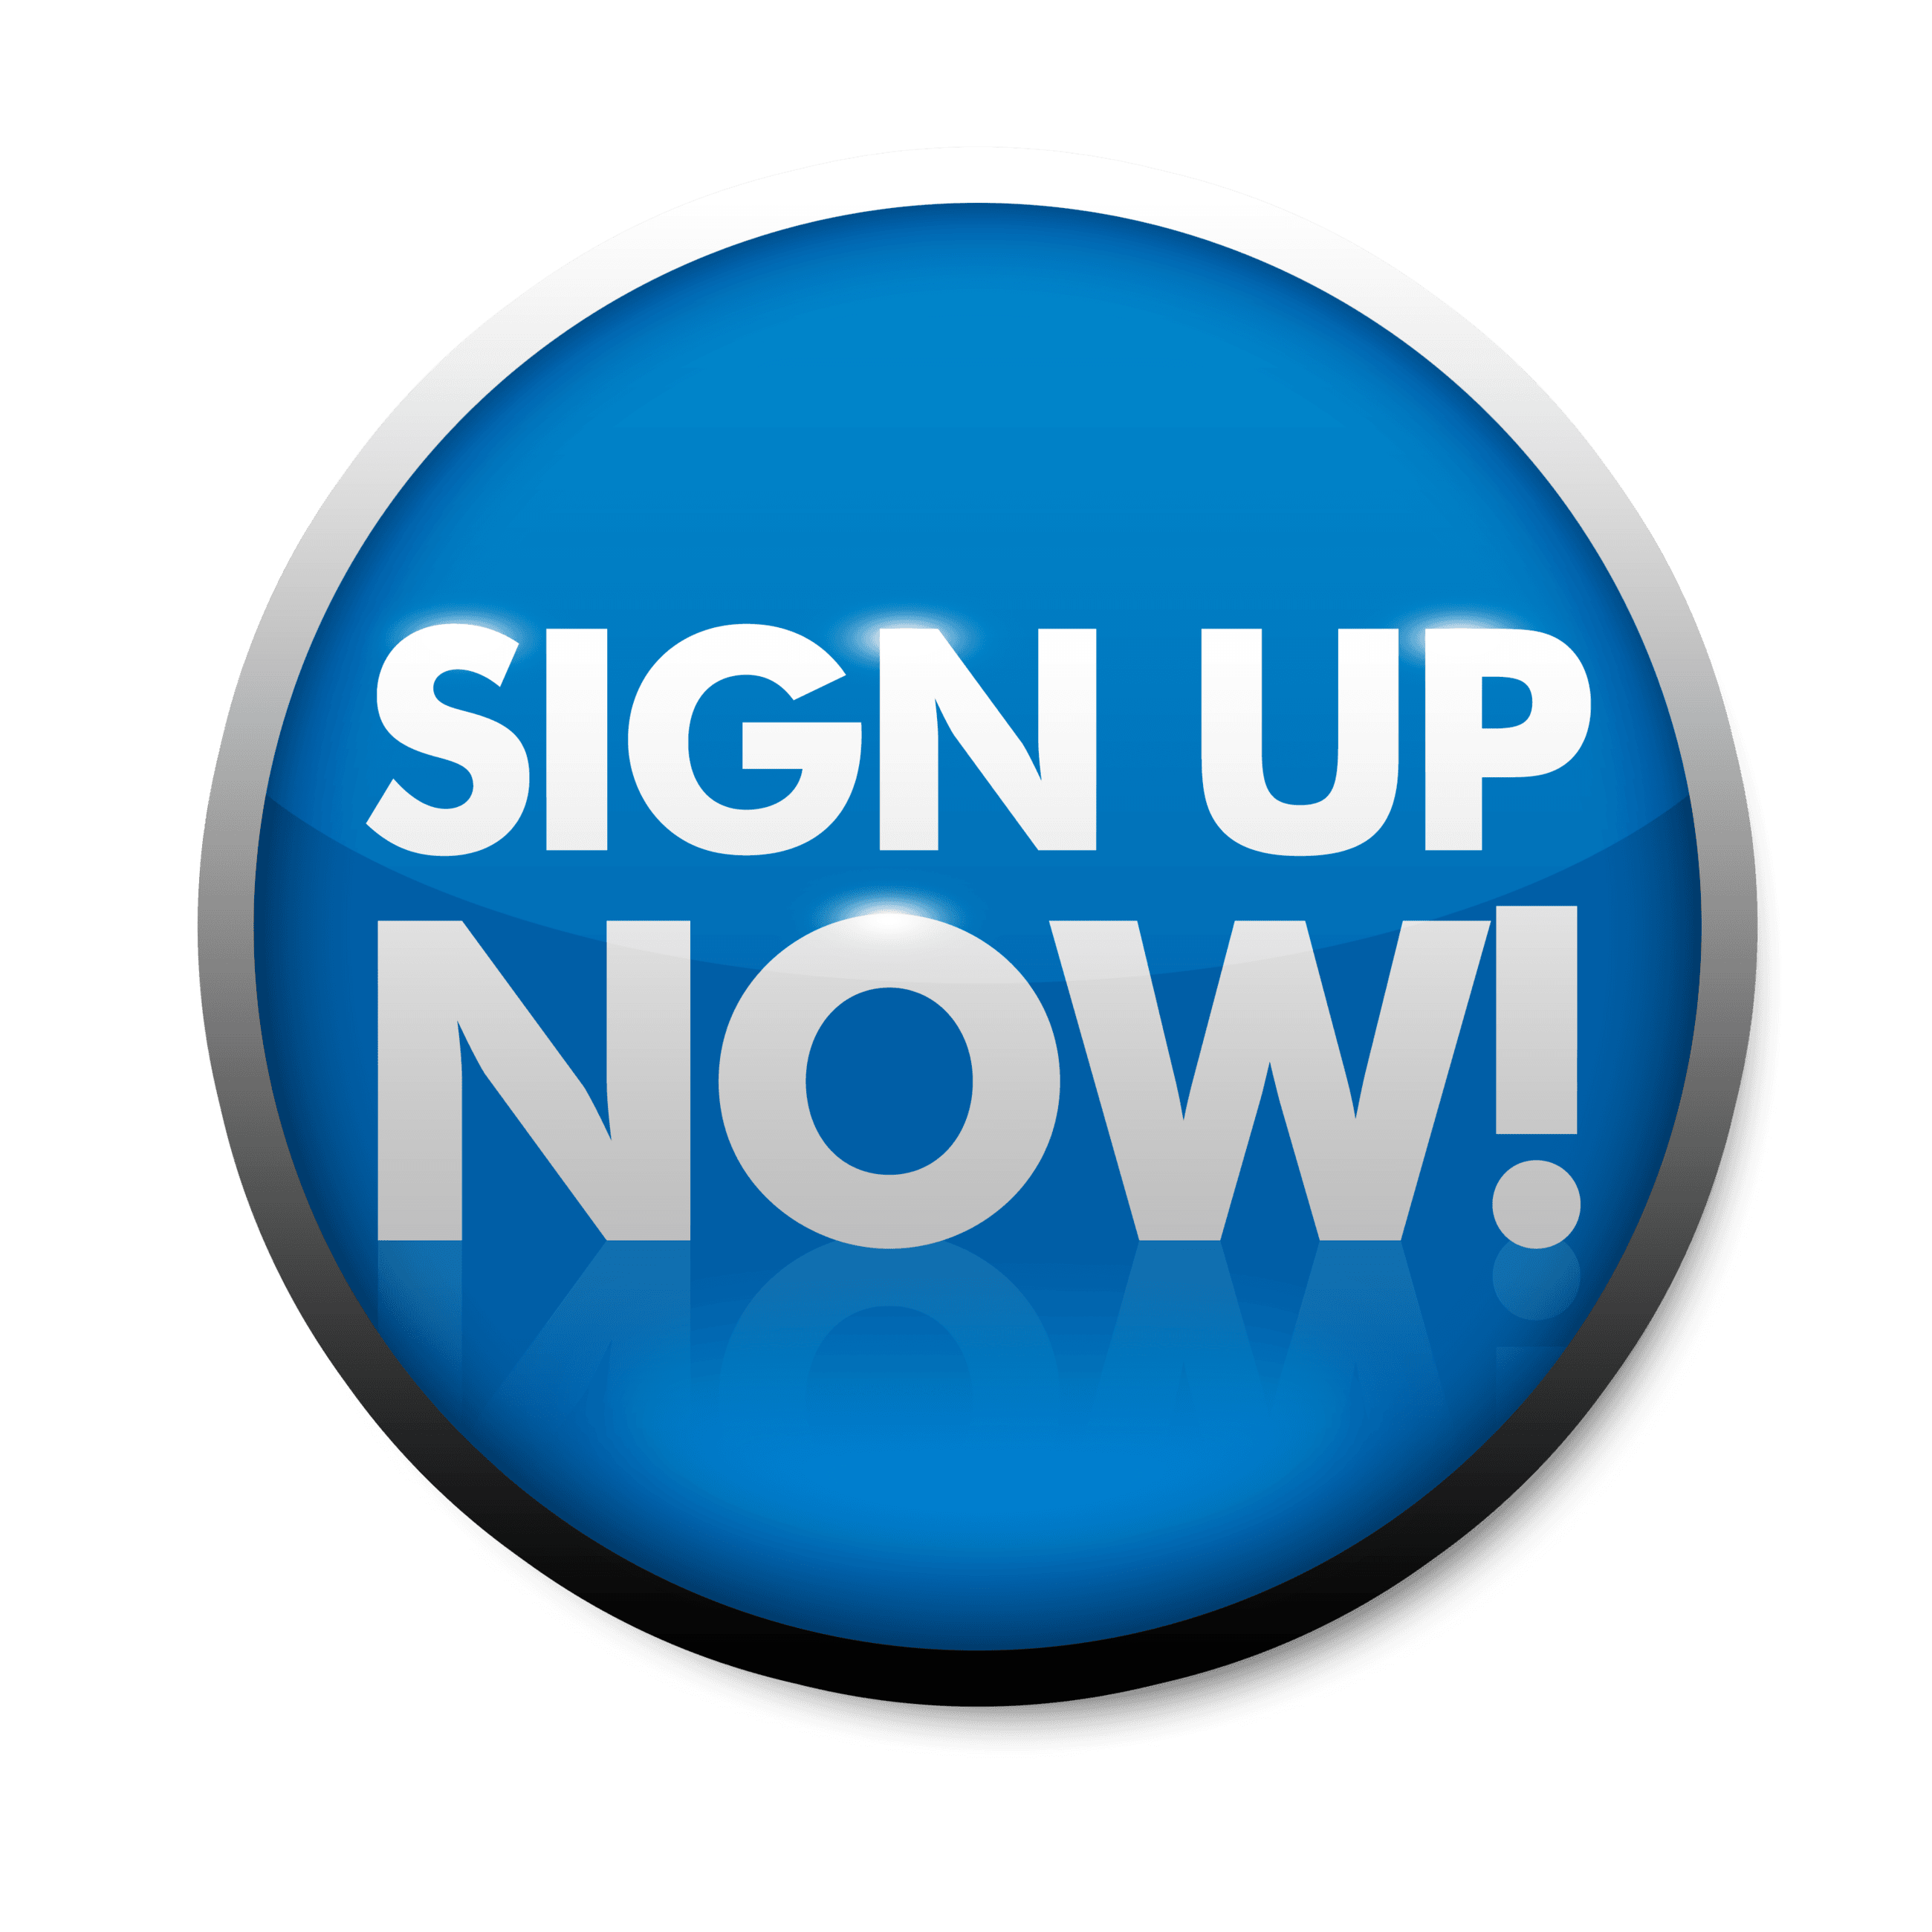 blue-button-sign-up-clipart